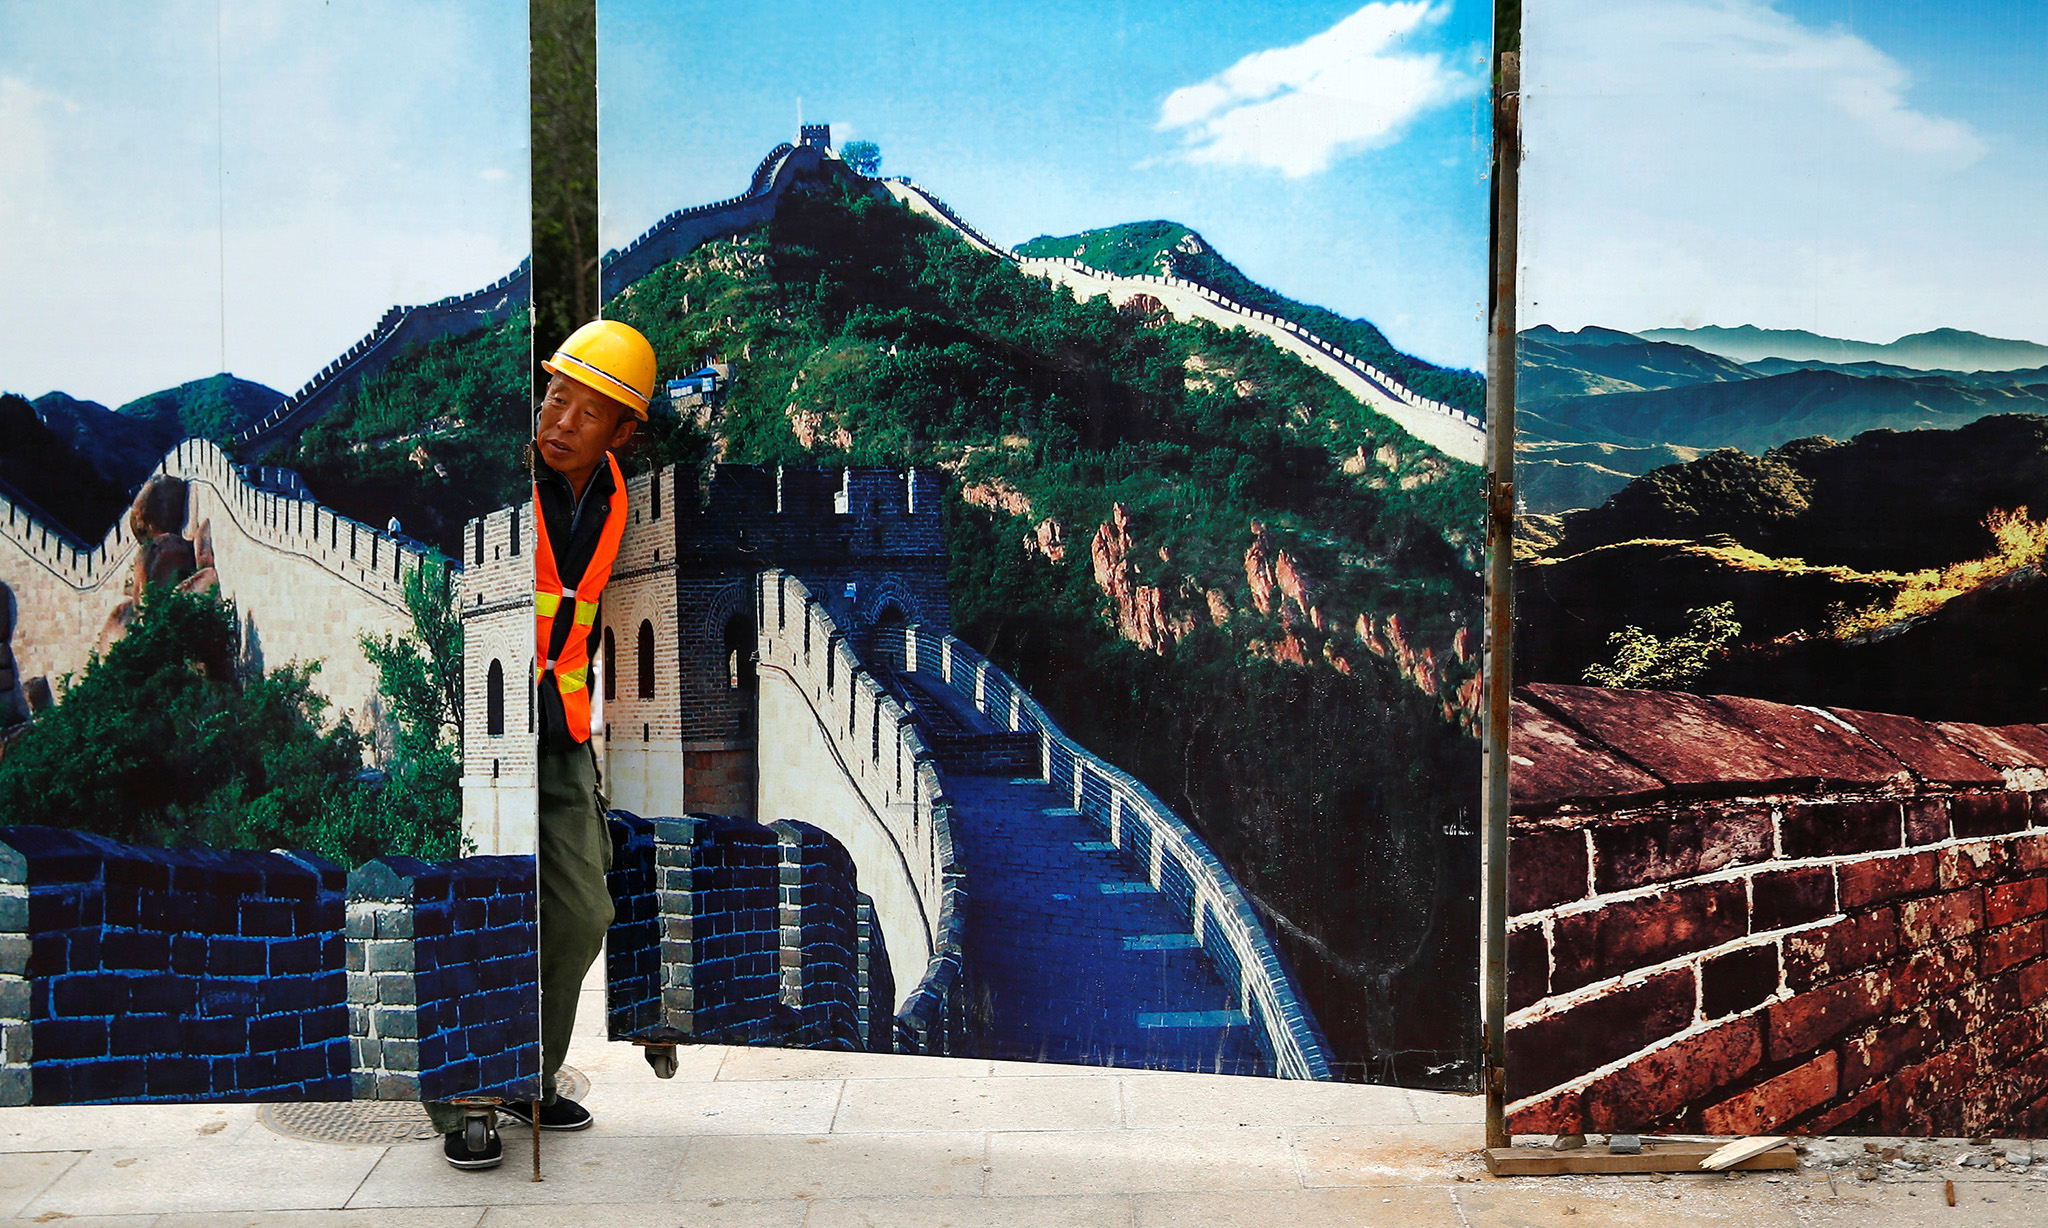 A worker looks through the fence of a construction site that is decorated with pictures of the Great Wall at Badaling, north of Beijing, China, September